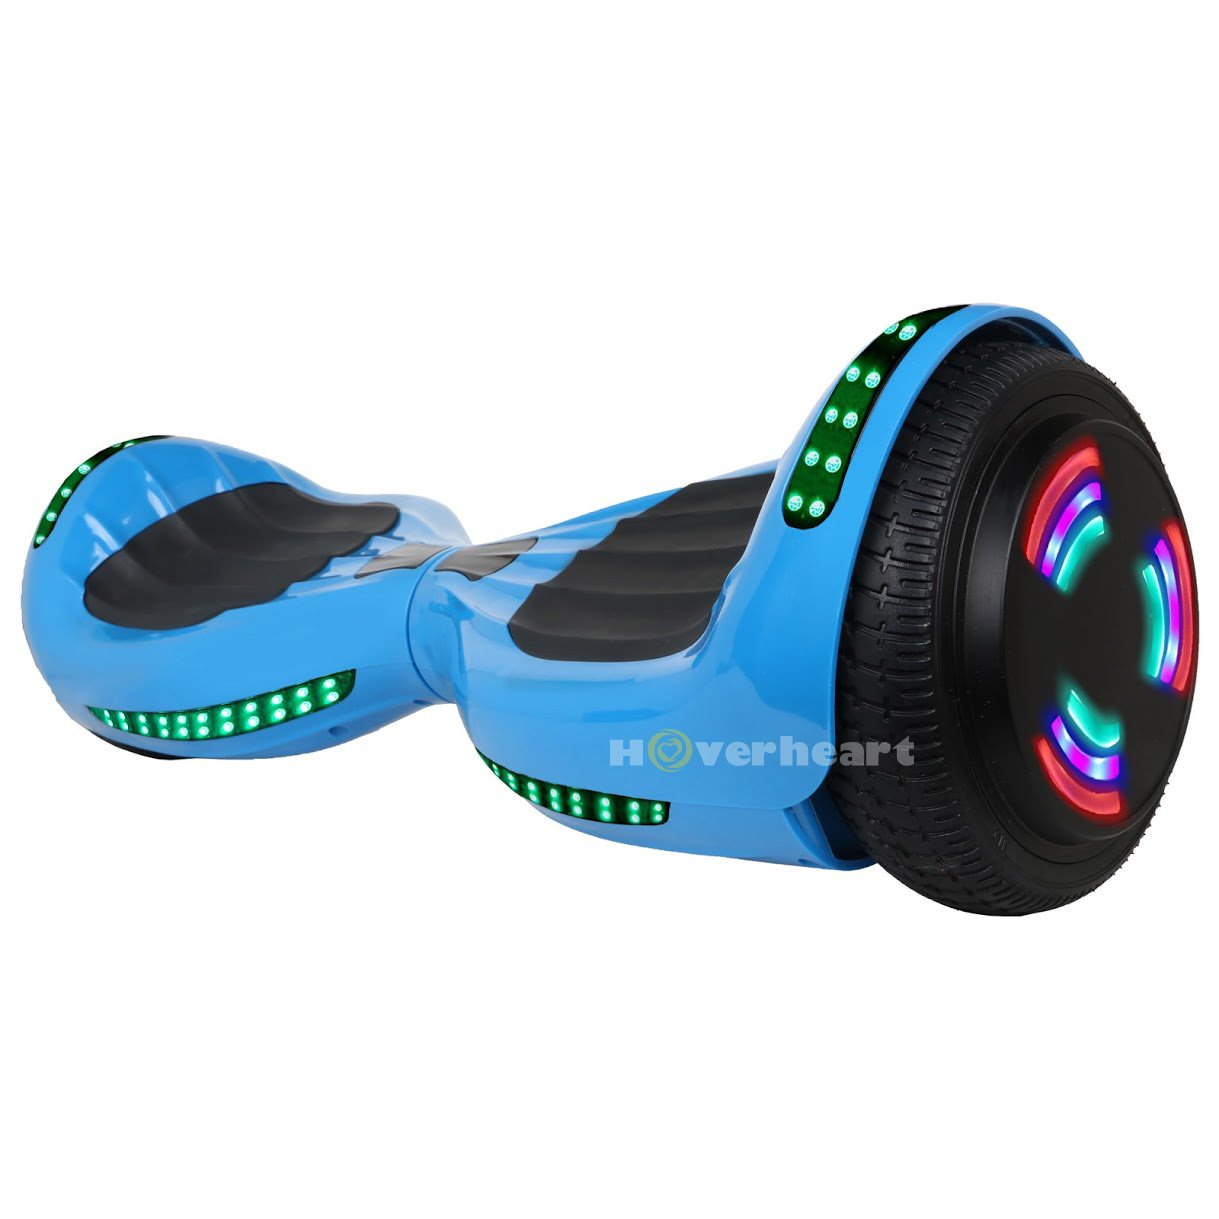 VEEKO Hoverboard UL 2272 Certified Flash Wheel 6.5'' Bluetooth Speaker with LED Light Self Balancing Wheel Electric Scooter (Blue) by Hoverheart